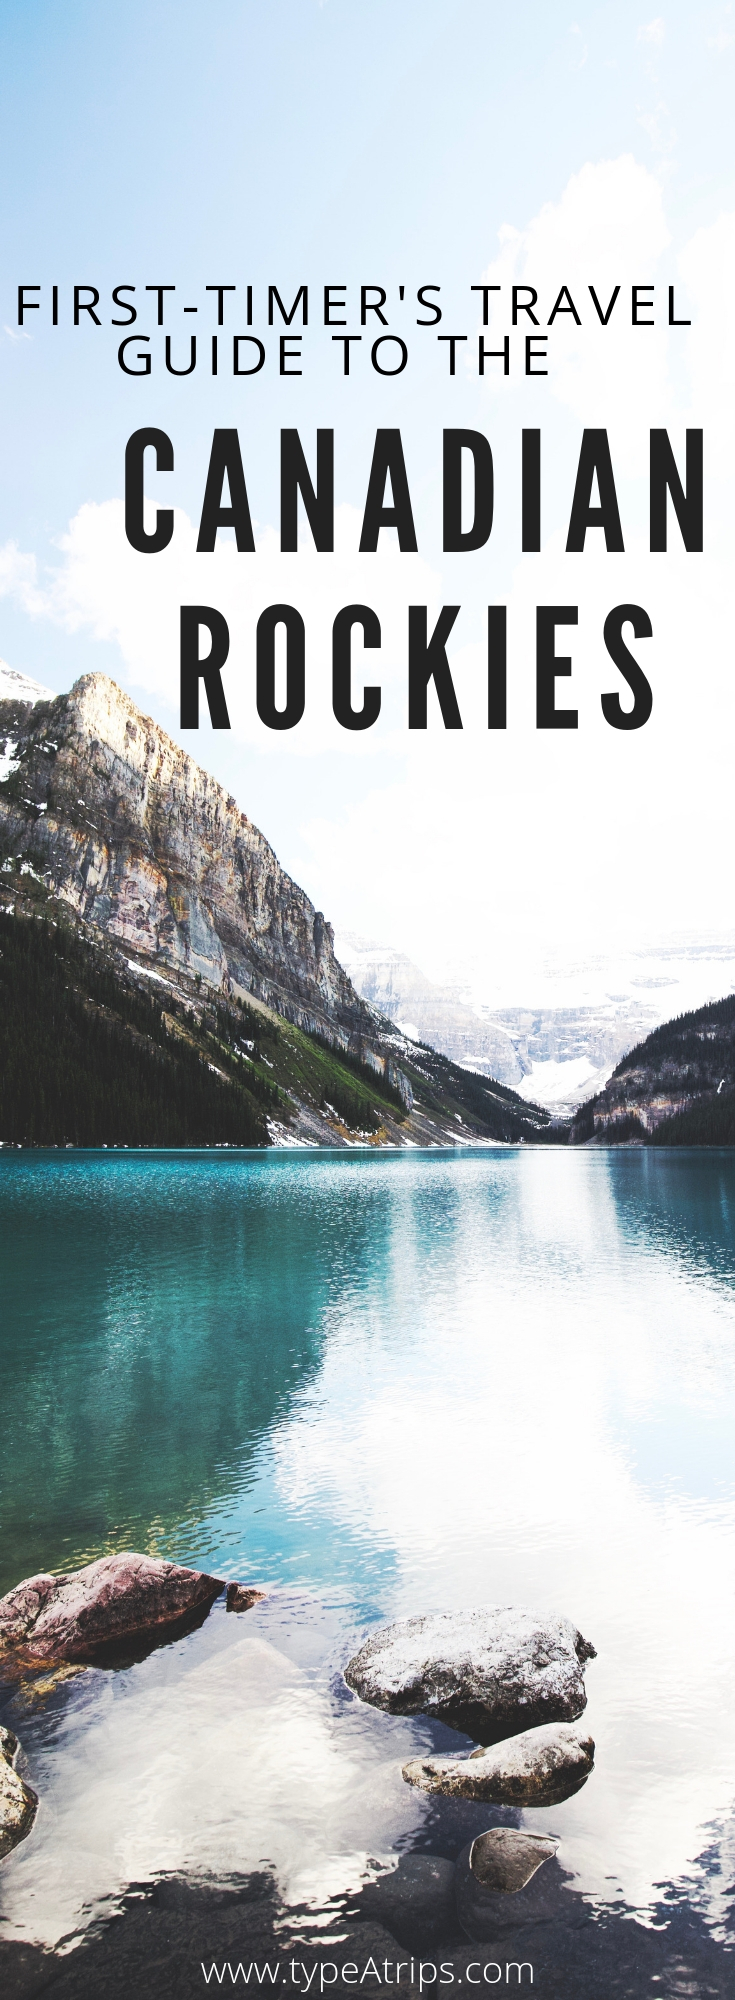 ALL YOU NEED TO KNOW FOR THE PERFECT CANADIAN ROCKIES VACATION - In my latest Travel Guide, I'm giving you all of my type-a tips for visiting the majestic Canadian Rockies. If you're seeking beauty and adventure, the Canadian Rockies is the perfect North American destination to check off of your bucket list. From Banff and Lake Louise, the Icefields Parkway up to Jasper, I've got all you need to know to plan the perfect vacation - JUST CLICK HERE!